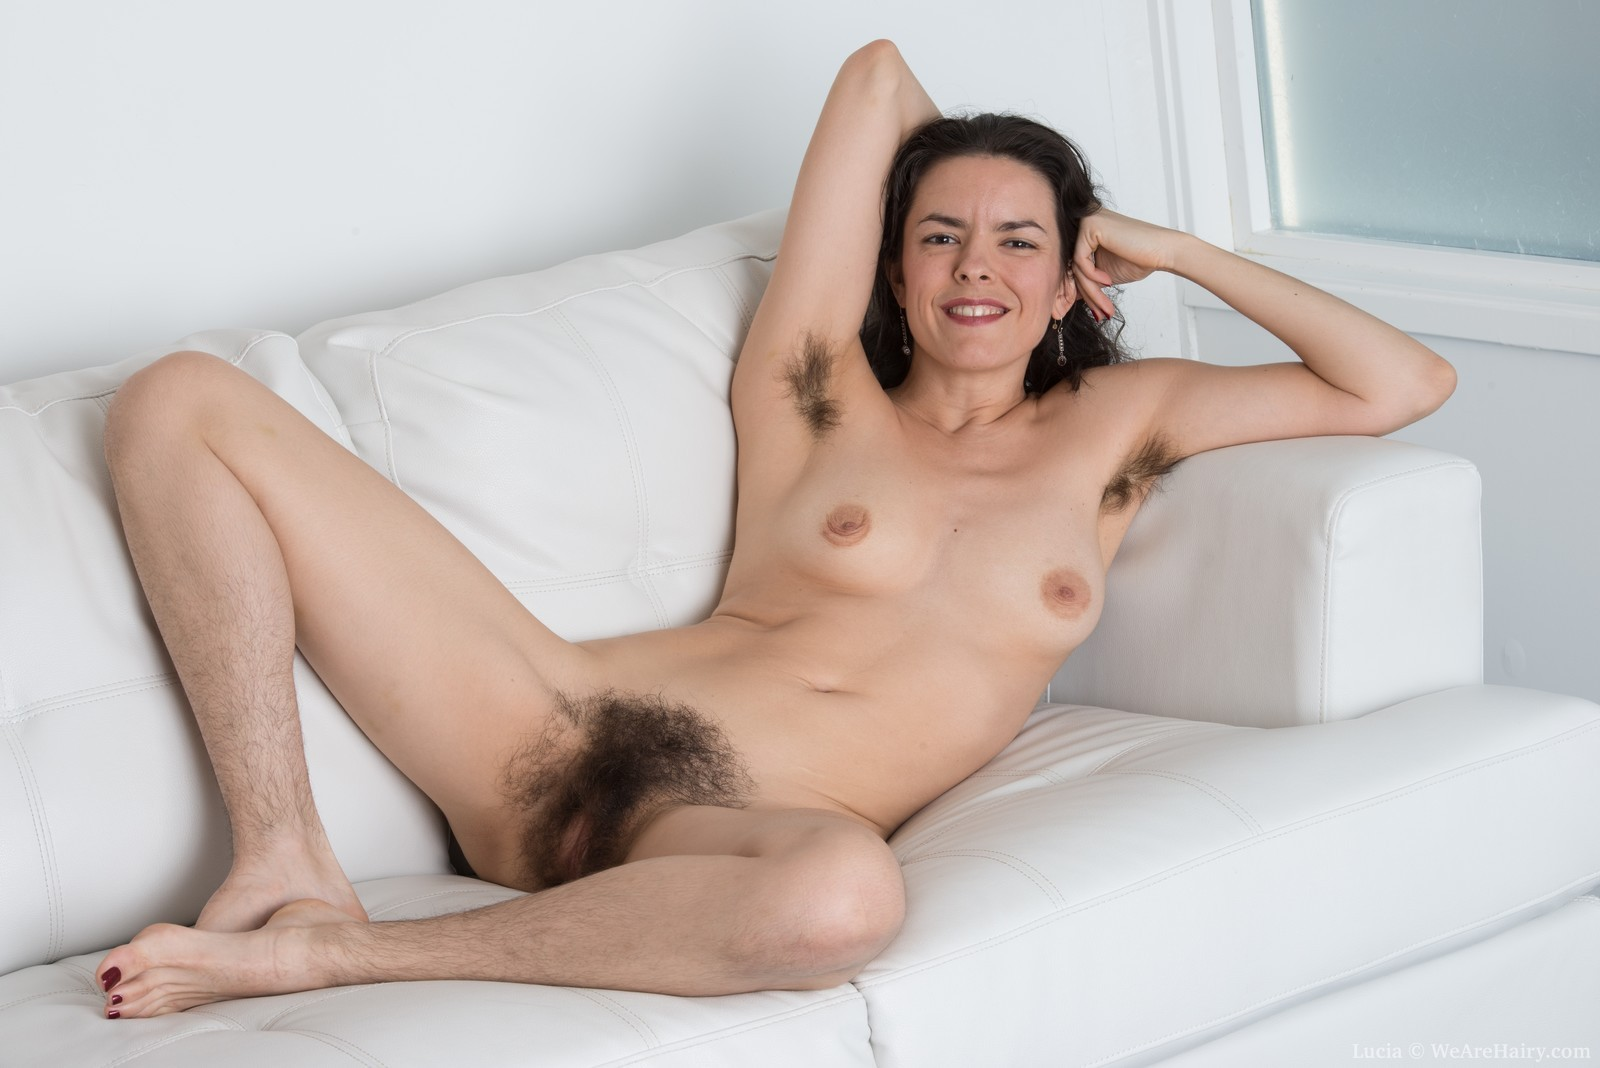 Girls with hairy pussies